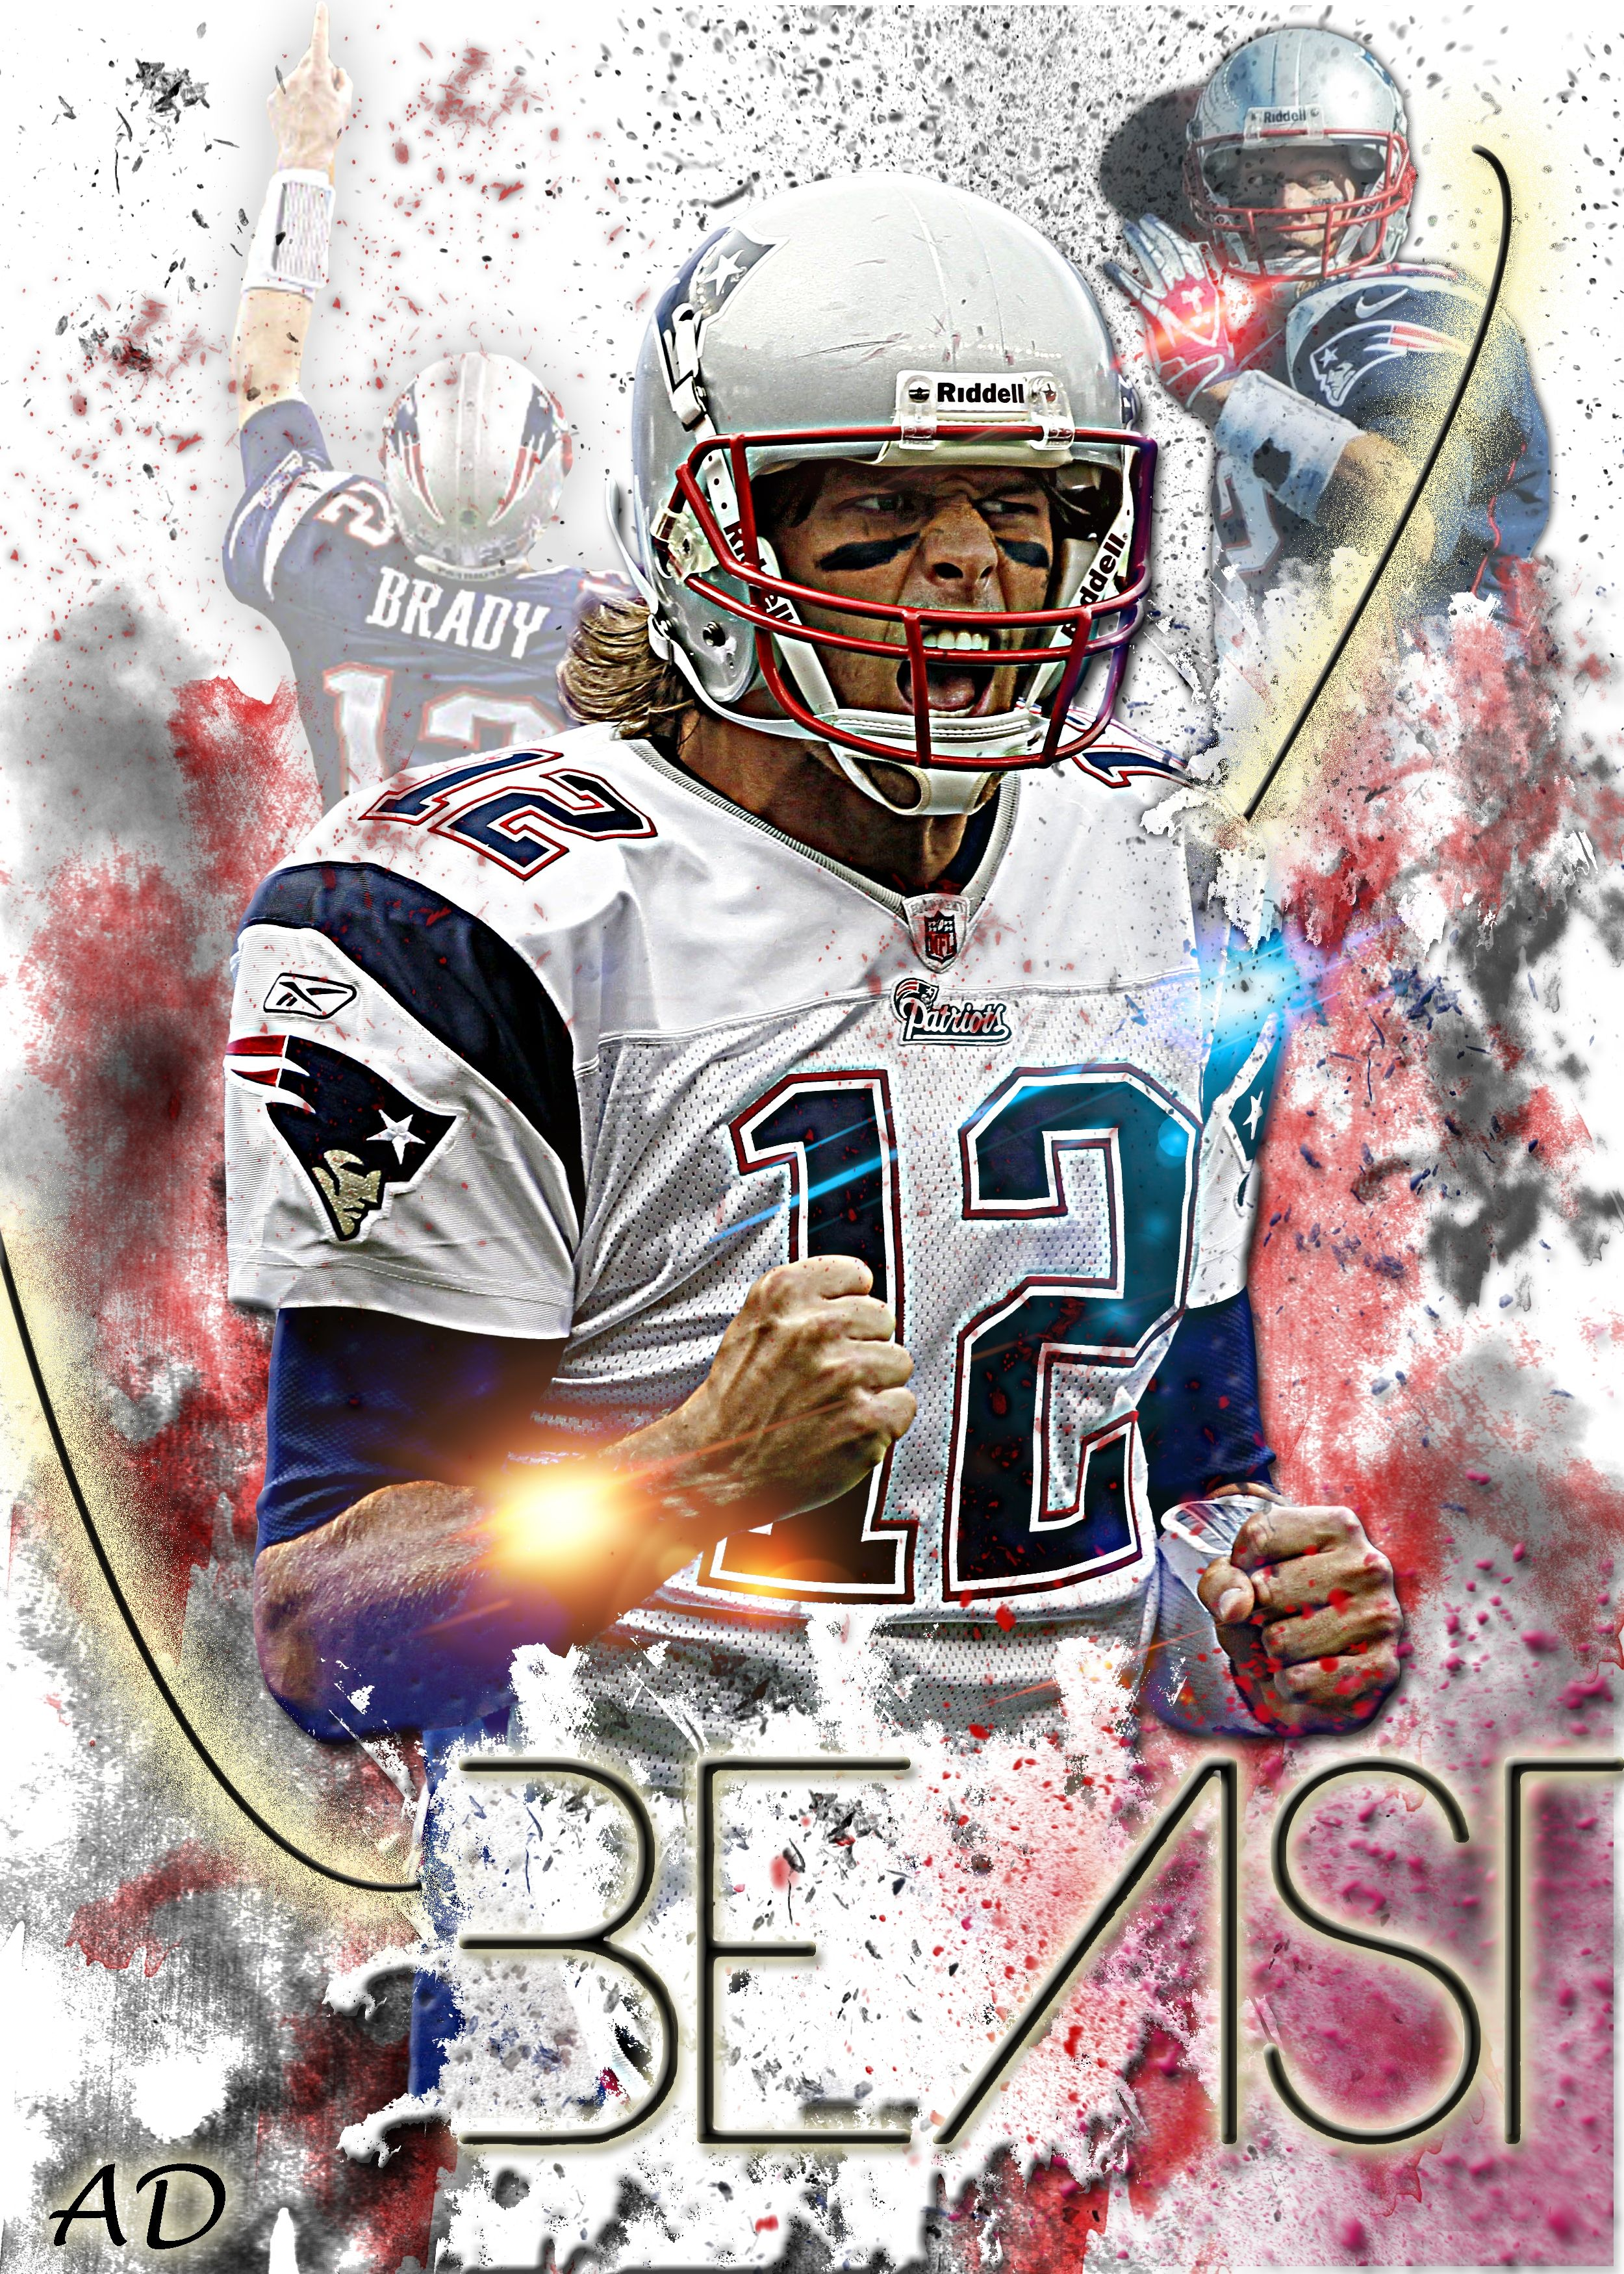 Patriots Beast Verycool Patriots Football New England Patriots New England Patriots Football